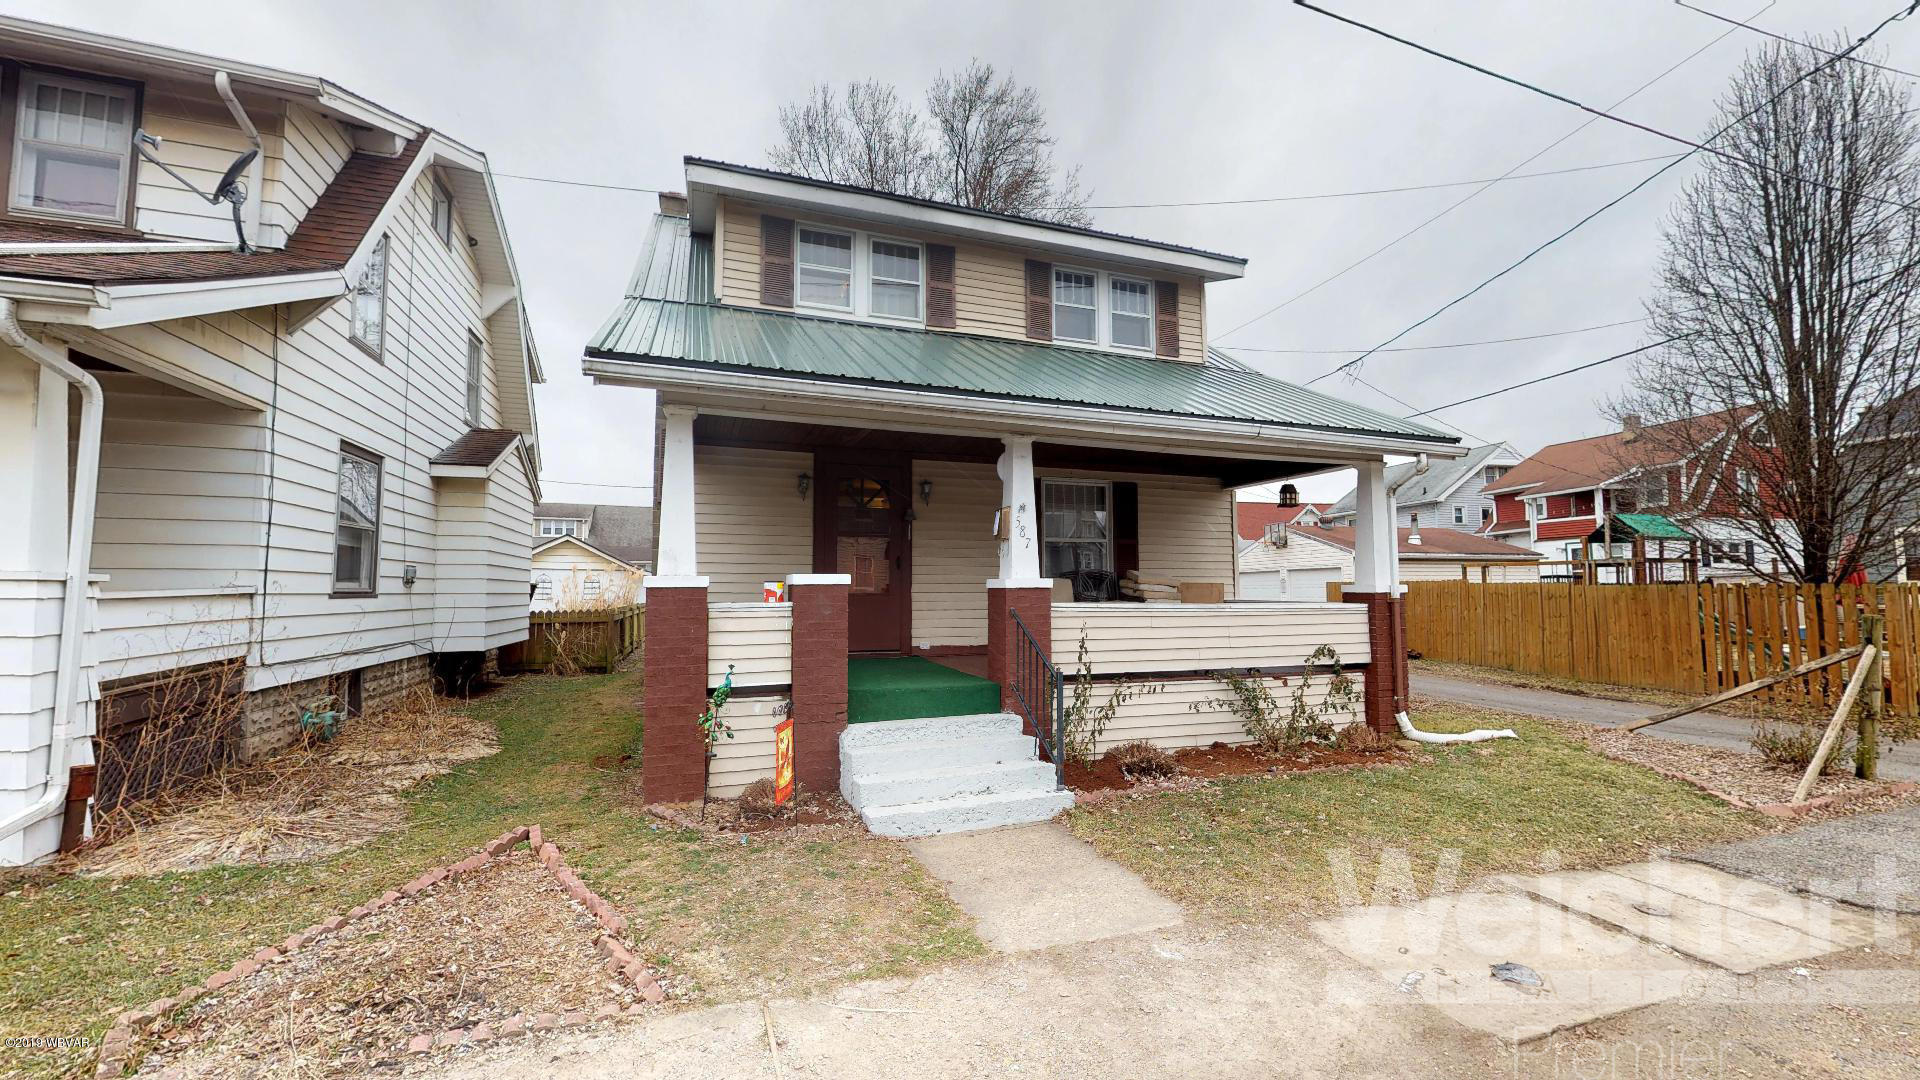 587 NEWCOMER AVENUE,Williamsport,PA 17701,3 Bedrooms Bedrooms,1 BathroomBathrooms,Residential,NEWCOMER,WB-86266